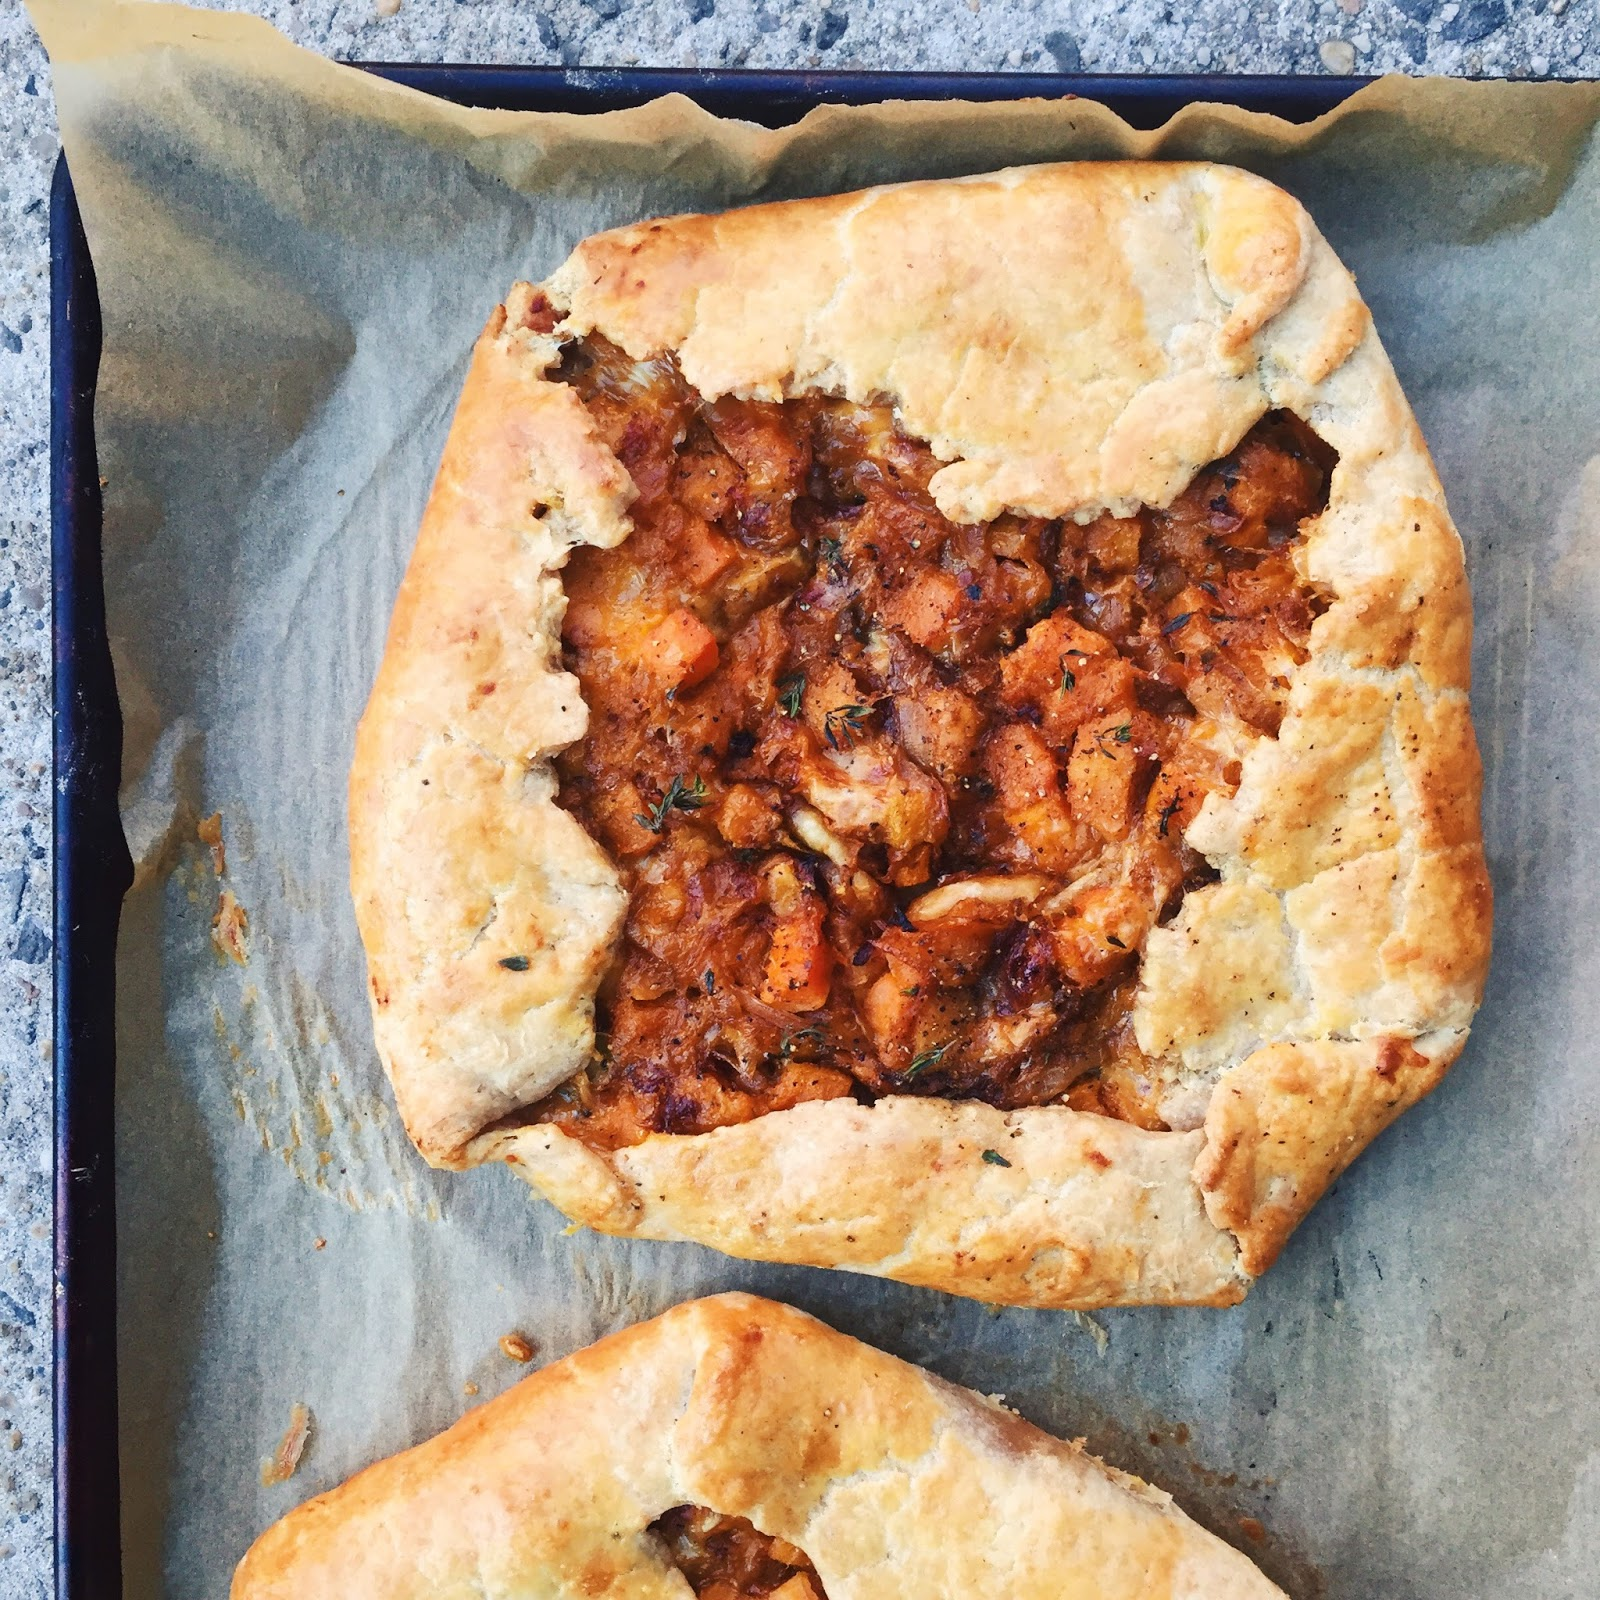 amour fou(d): butternut squash and caramelized onion galette.